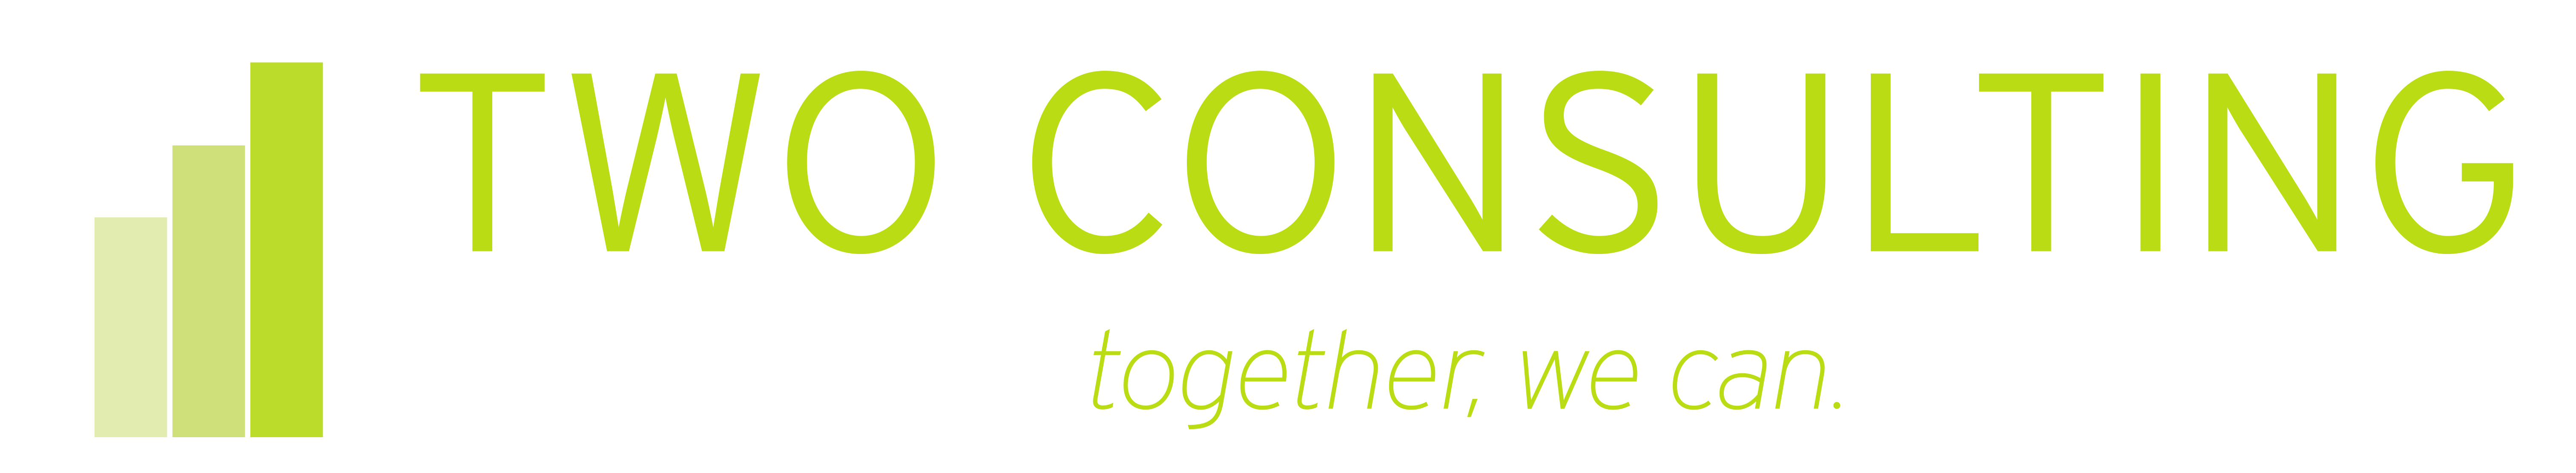 together, we can | Business Excellence | Strategy | Continuous Improvement | Innovation | Lean | Australia